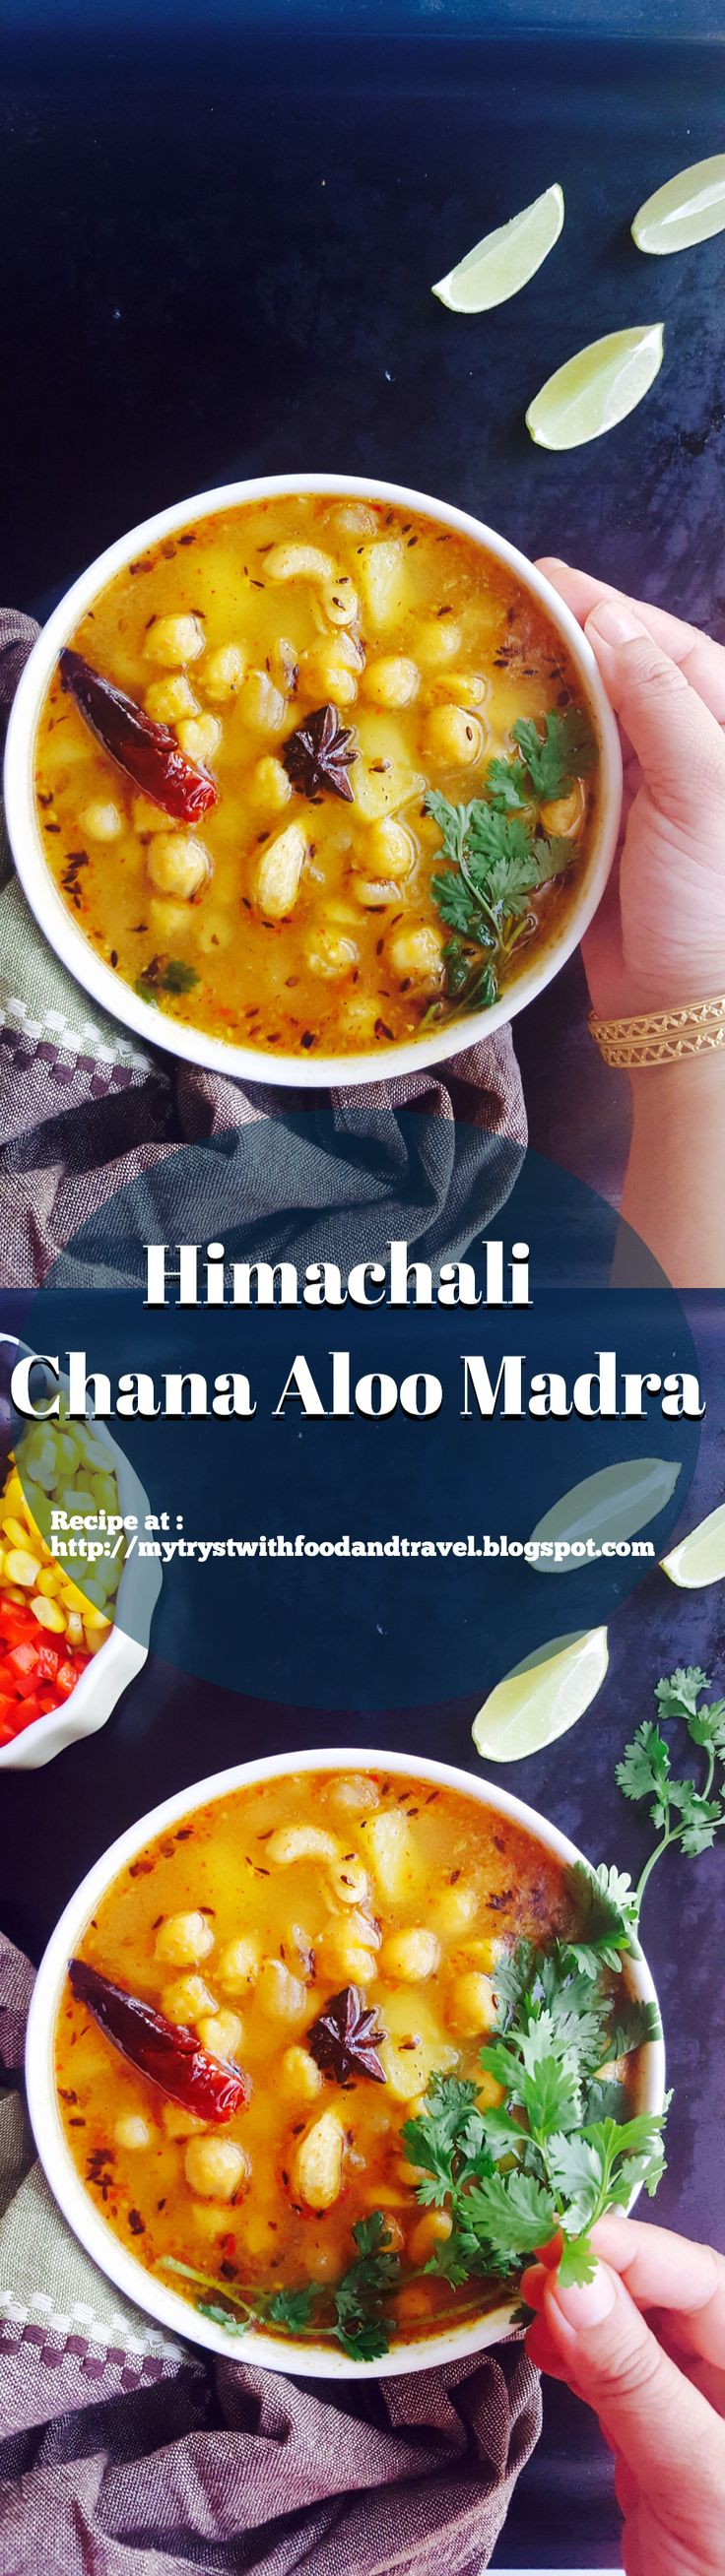 Himachali Chana Aloo Madra is that nouvelle dish. Slow cooked in a yogurt gravy and perfumed with spices, each flavour note caresses your taste buds distinctly. It is noteworthy, that unlike most Indian curries, this does not make use of onions, ginger, garlic or tomatoes as its base masala.